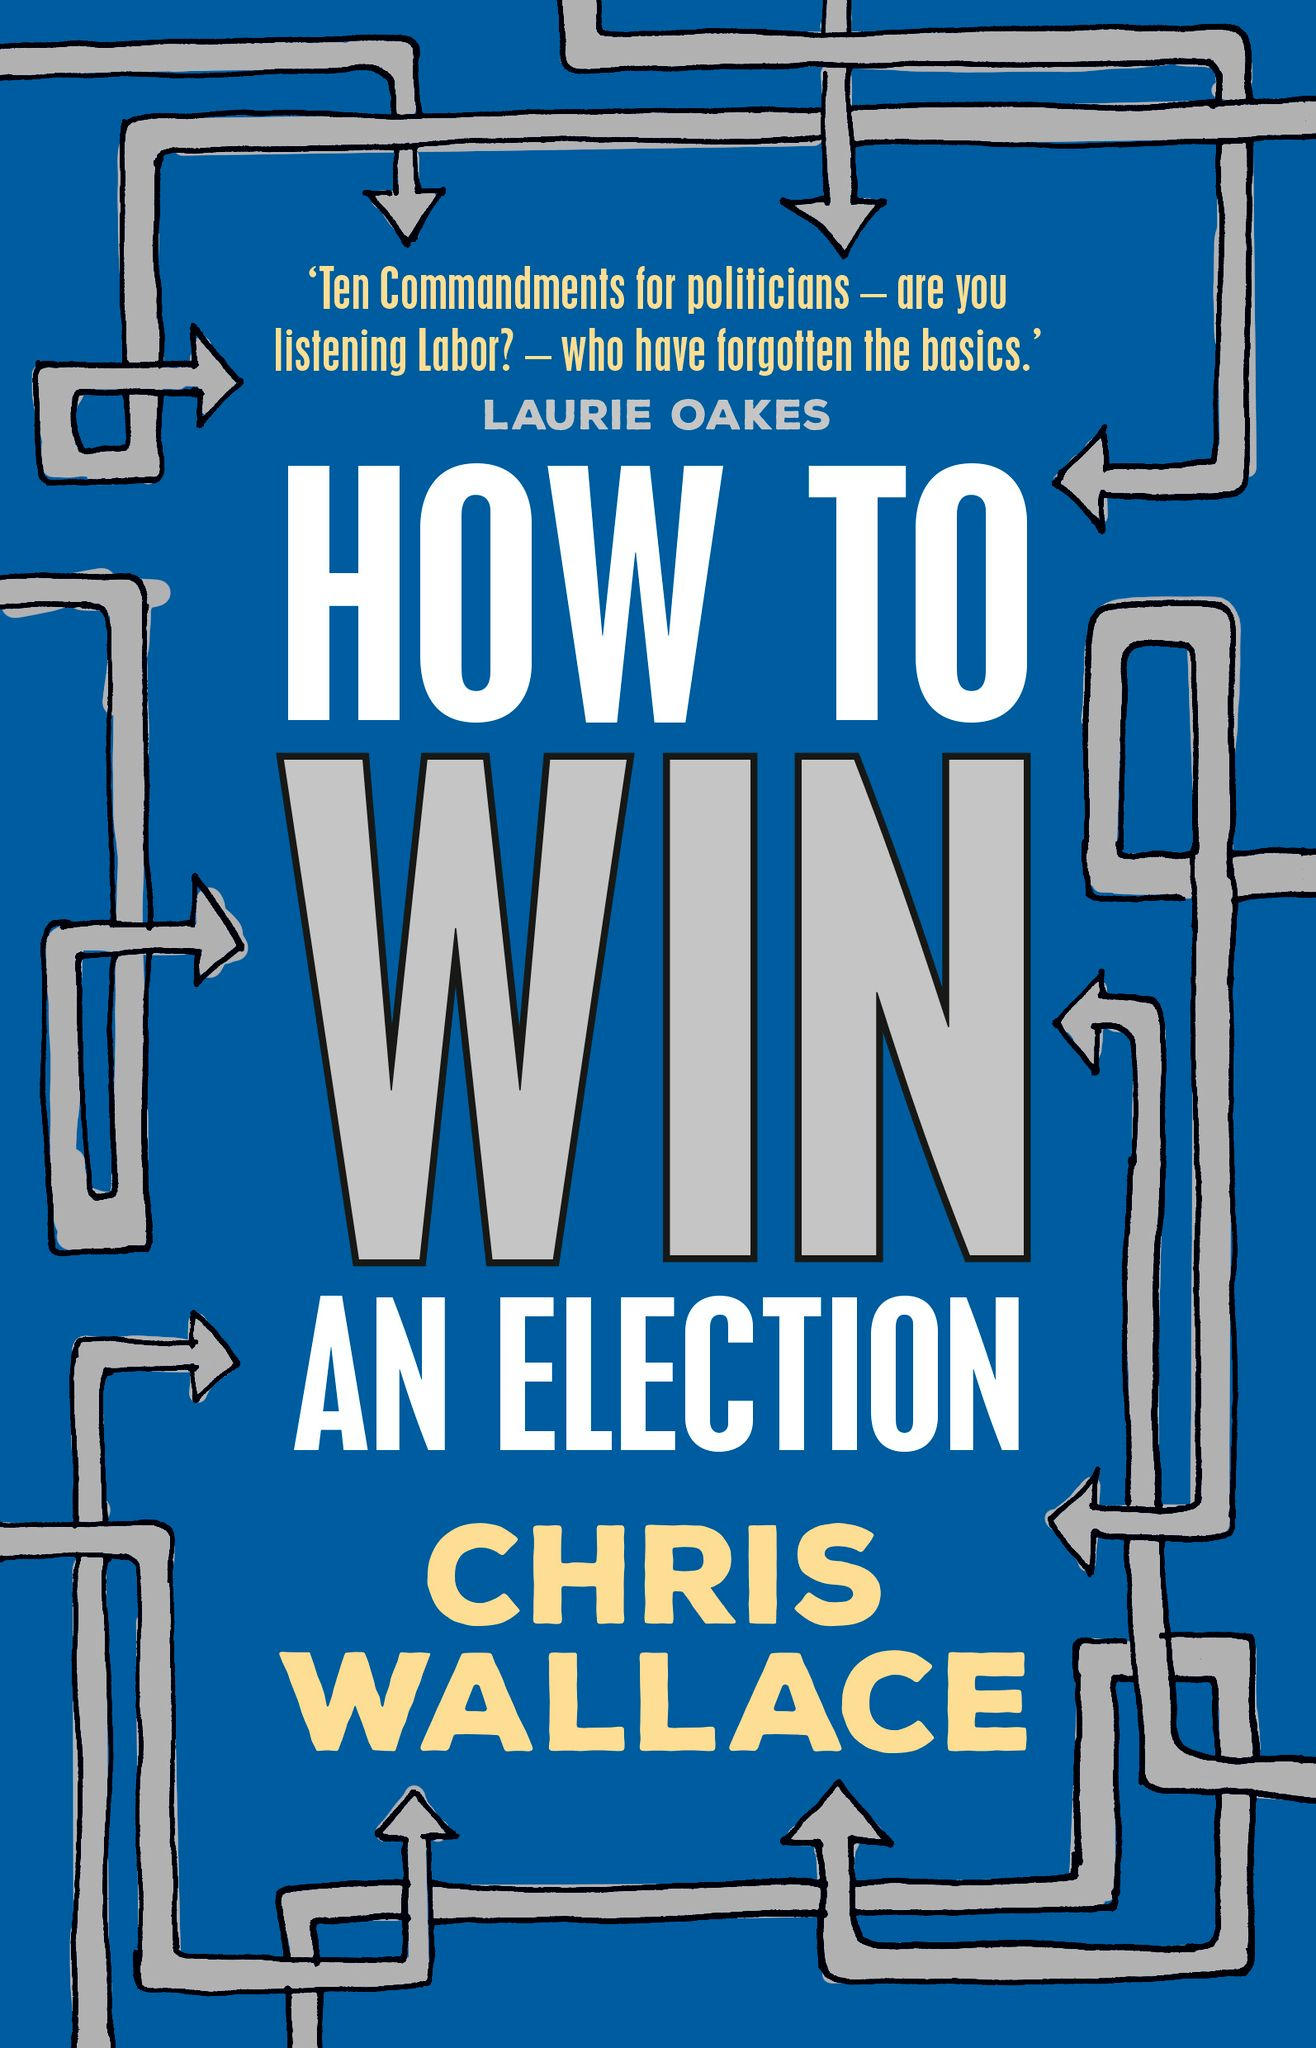 Cover of book How to win an election